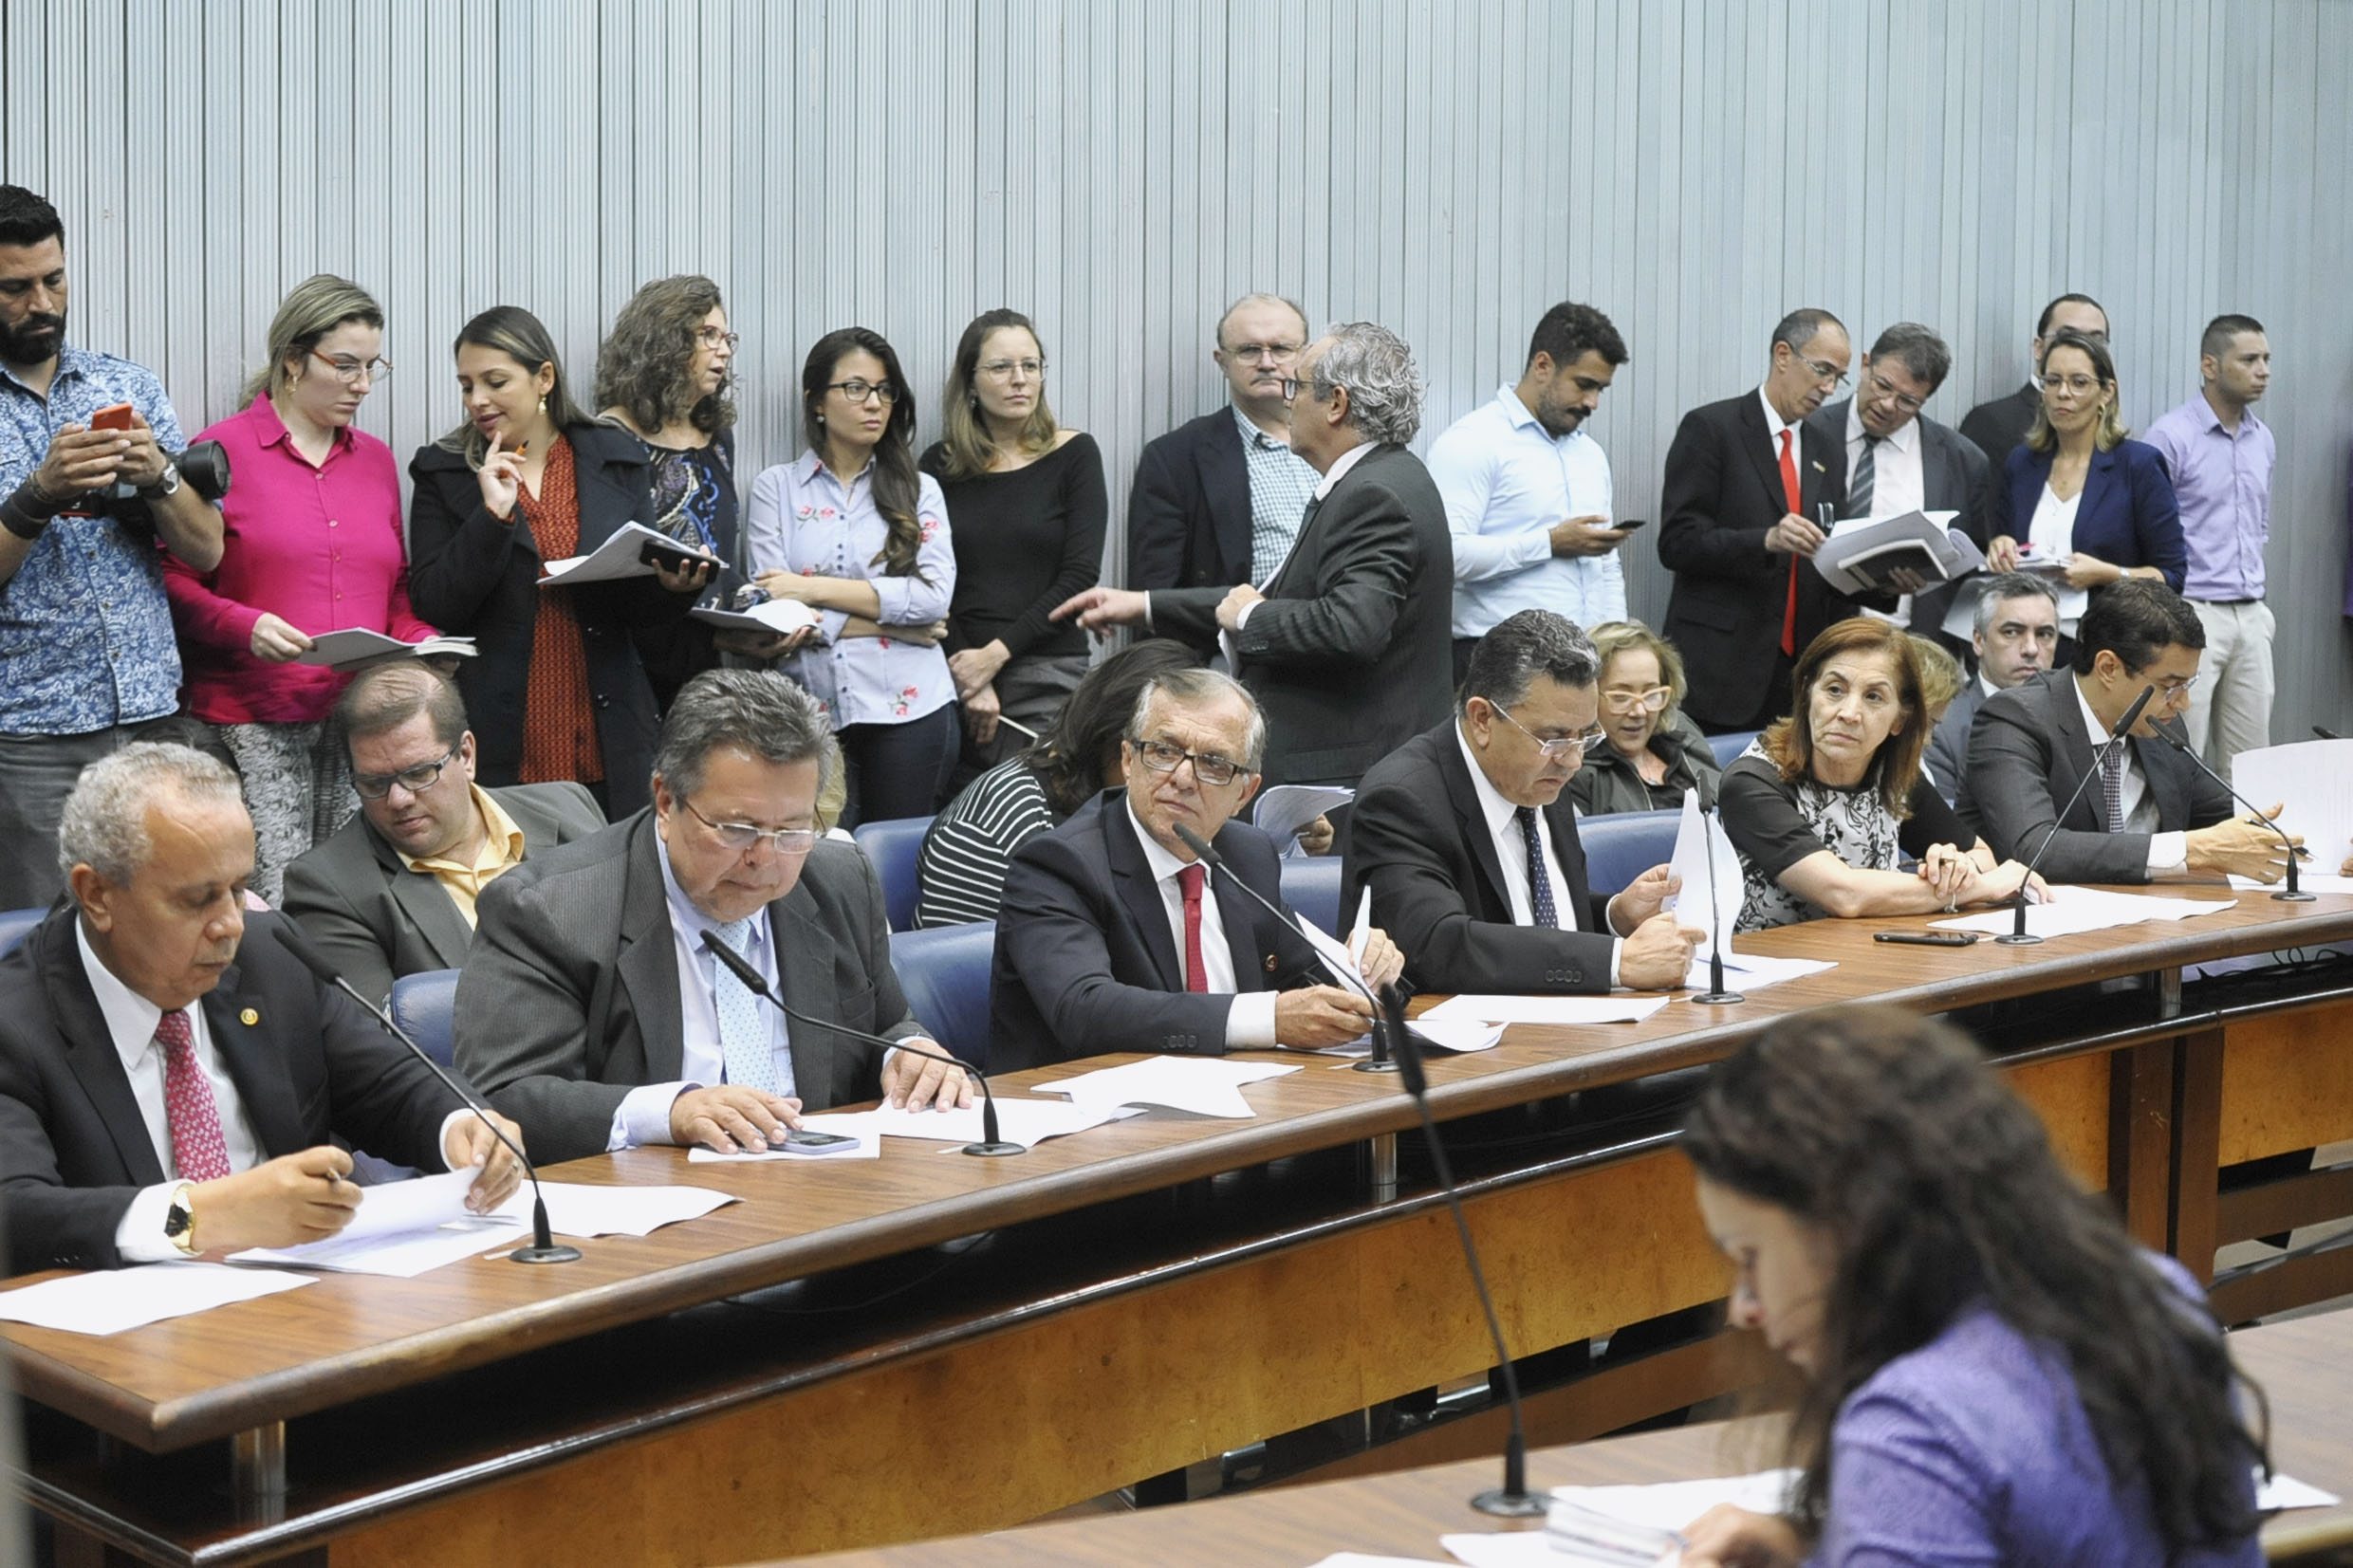 Parlamentares na comissão<a style='float:right' href='https://www3.al.sp.gov.br/repositorio/noticia/N-05-2019/fg234187.jpg' target=_blank><img src='/_img/material-file-download-white.png' width='14px' alt='Clique para baixar a imagem'></a>